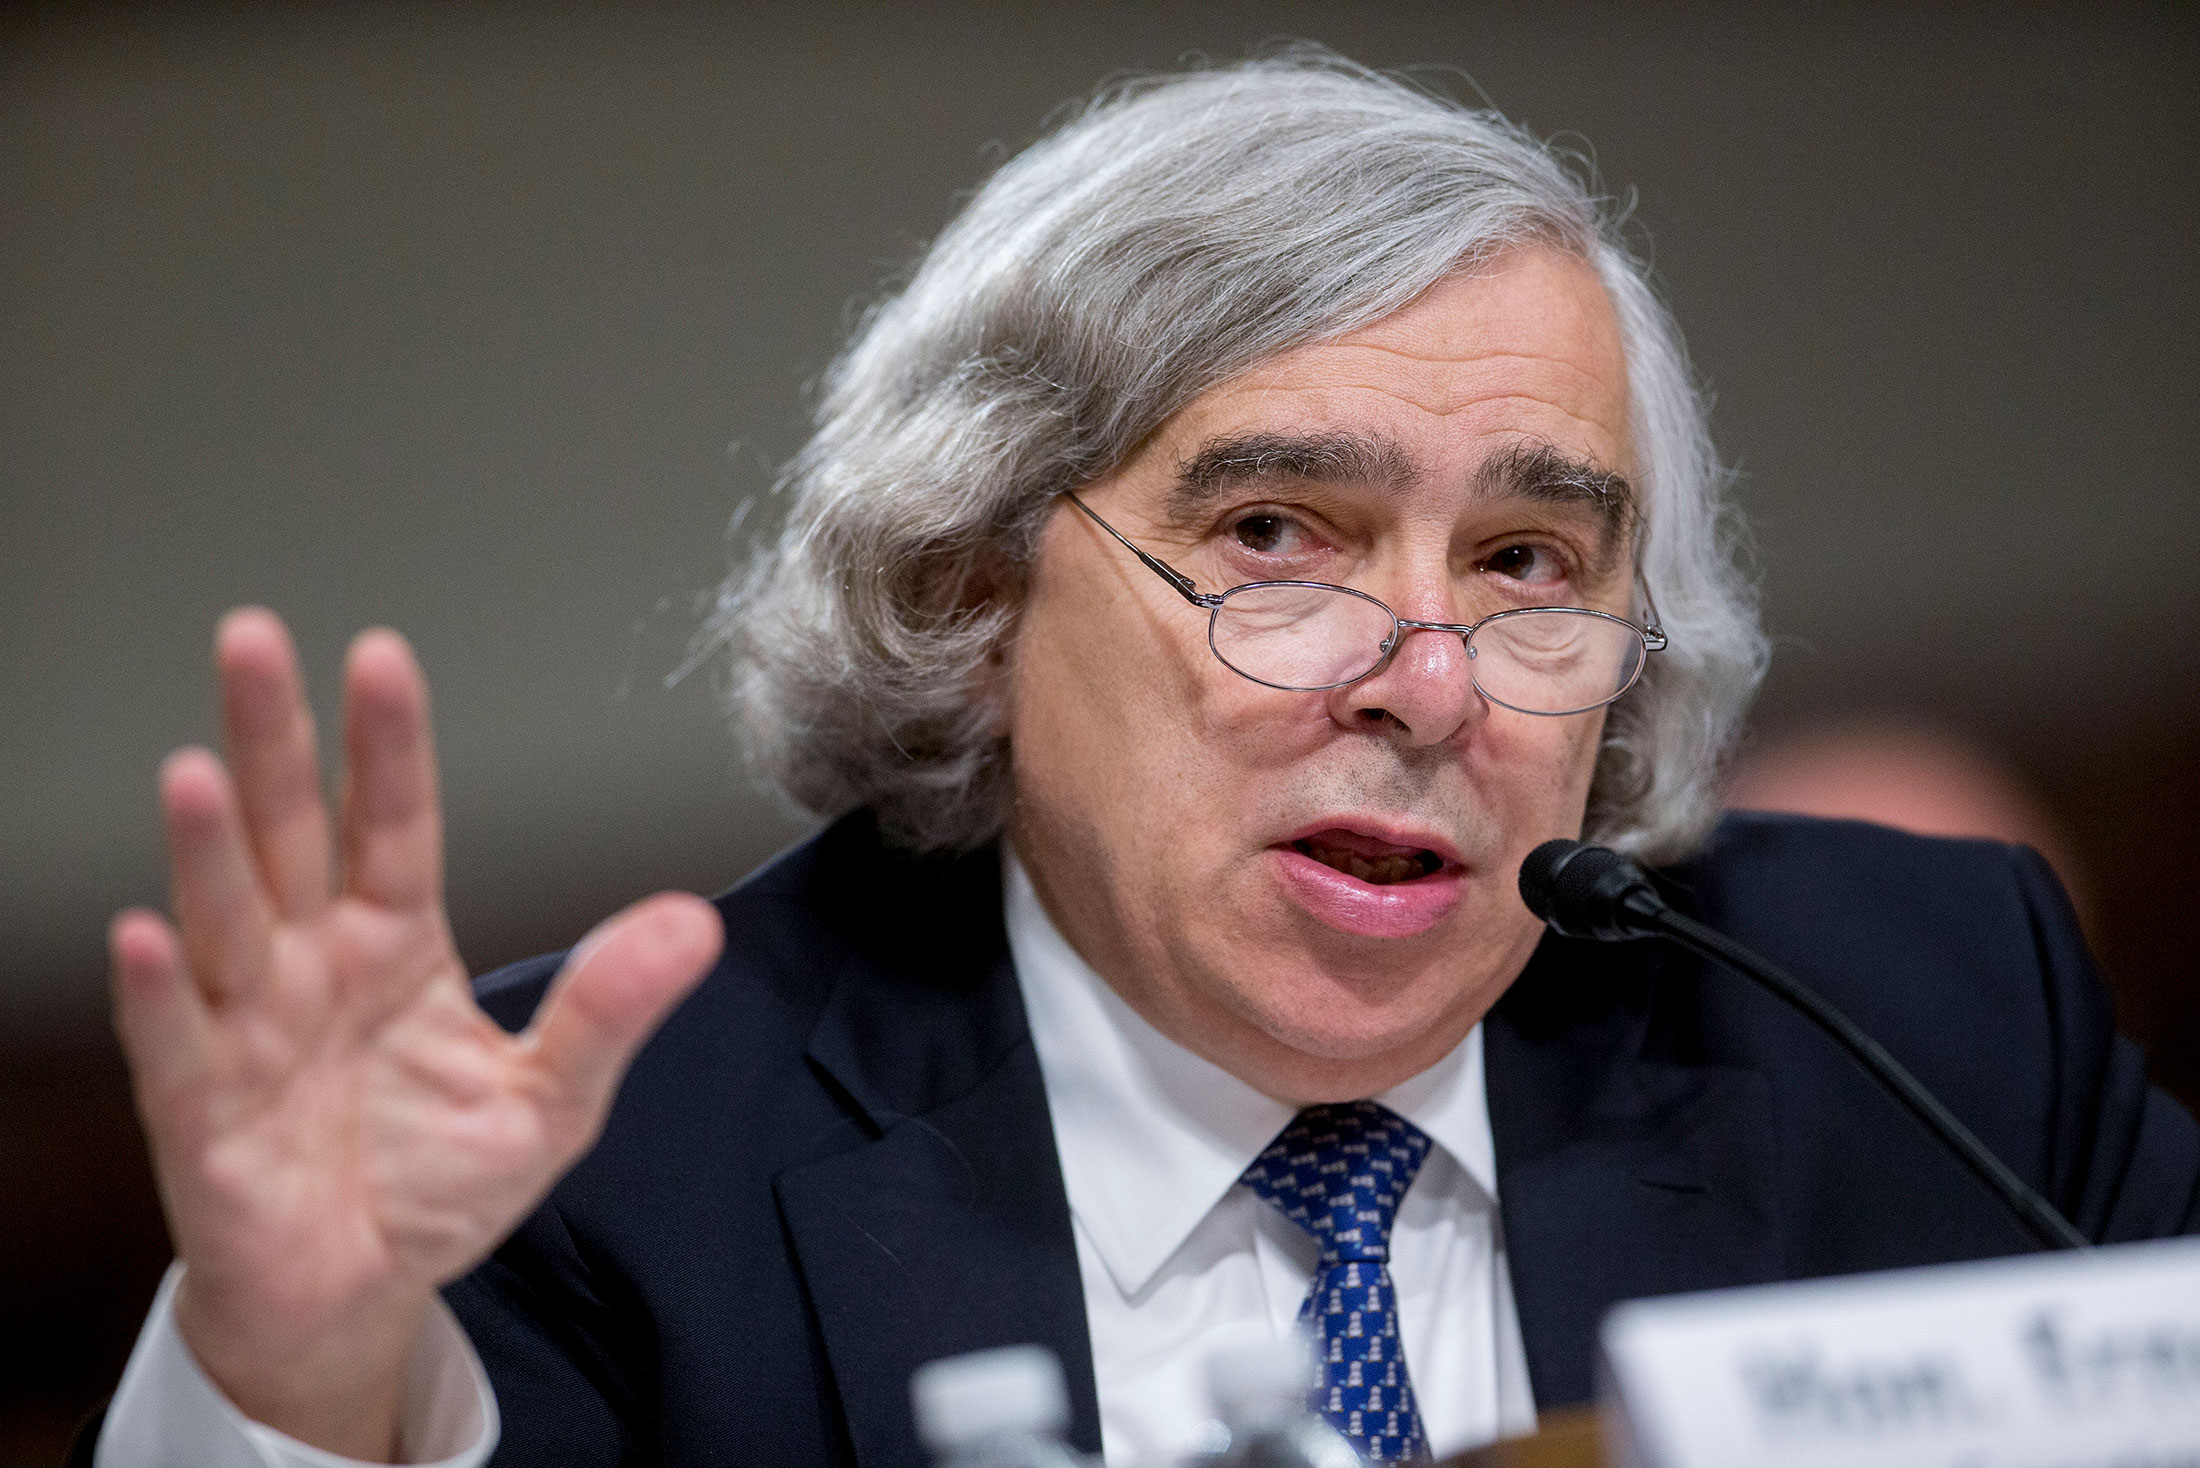 Ernest Moniz, U.S. secretary of energy, speaks during a Senate Foreign Relations Committee hearing in Washington, D.C., U.S., on Thursday, July 23, 2015. Senator Bob Corker, a key player in the congressional debate over the nuclear deal with Iran, told Secretary of State John Kerry that the Obama administration is engaging in hyperbole to sell it. Photographer: Andrew Harrer/Bloomberg *** Local Caption *** Ernest Moniz